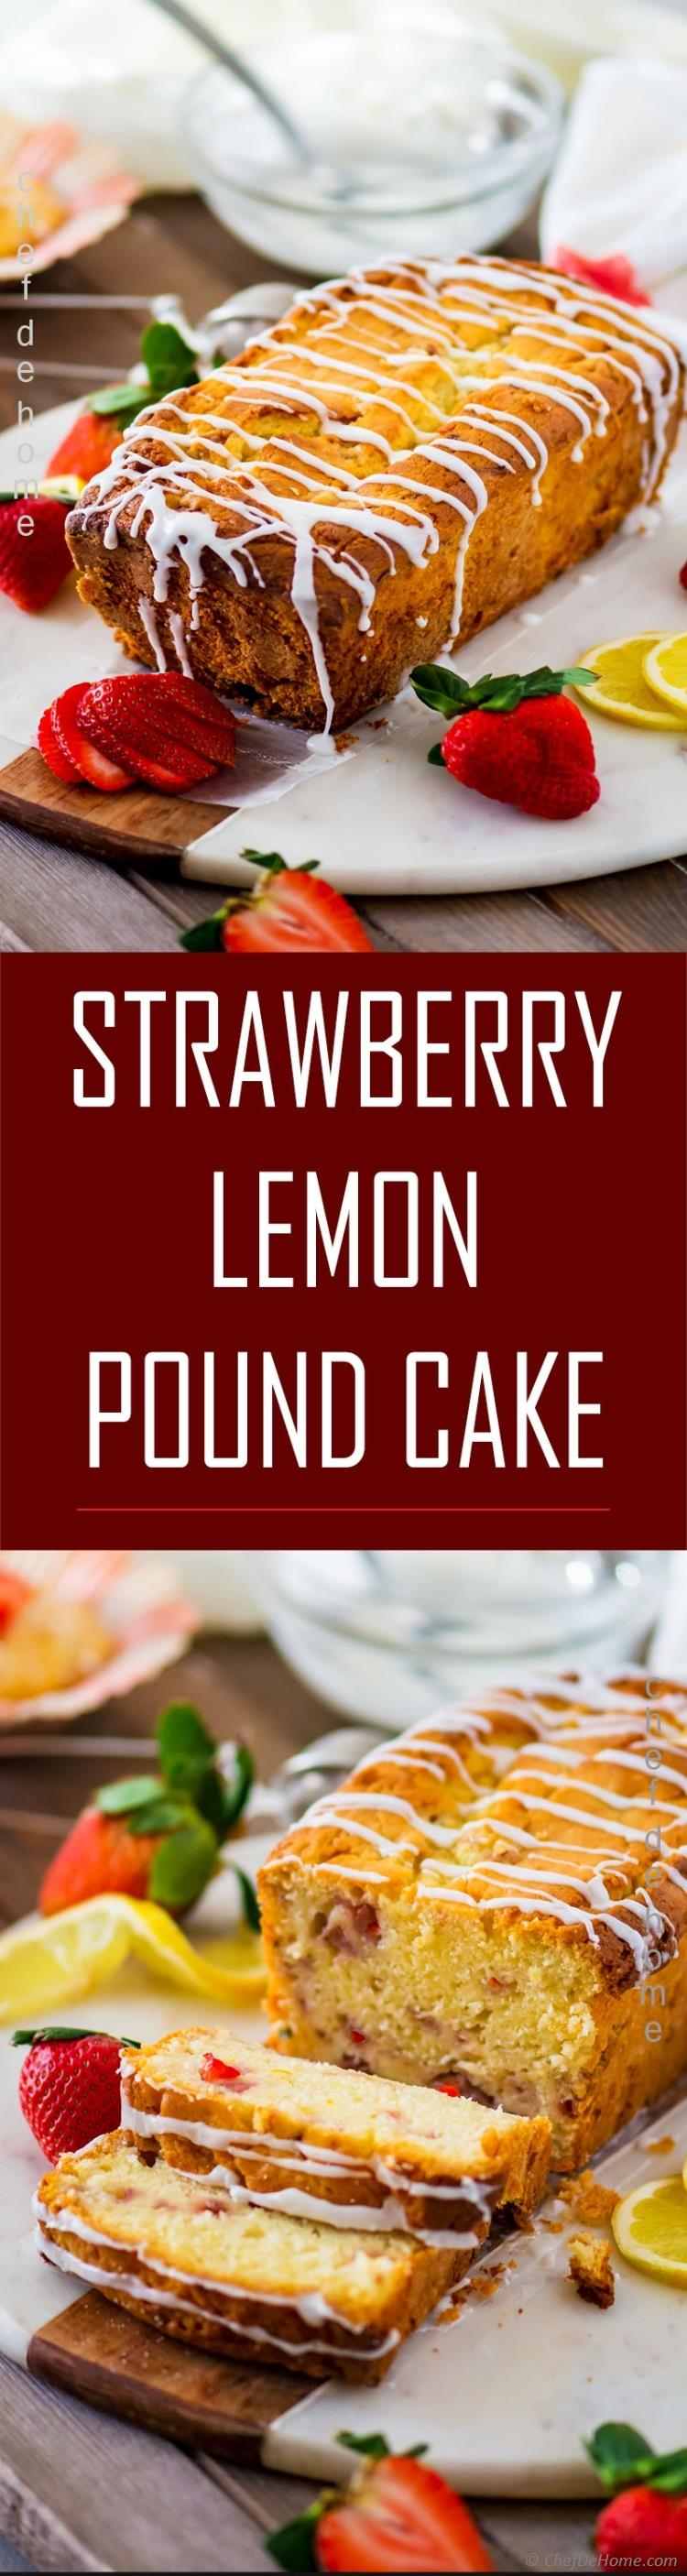 Fresh Strawberry and Lemon Pound Cake to serve for dessert or for a tea time snack | chefdehome.com